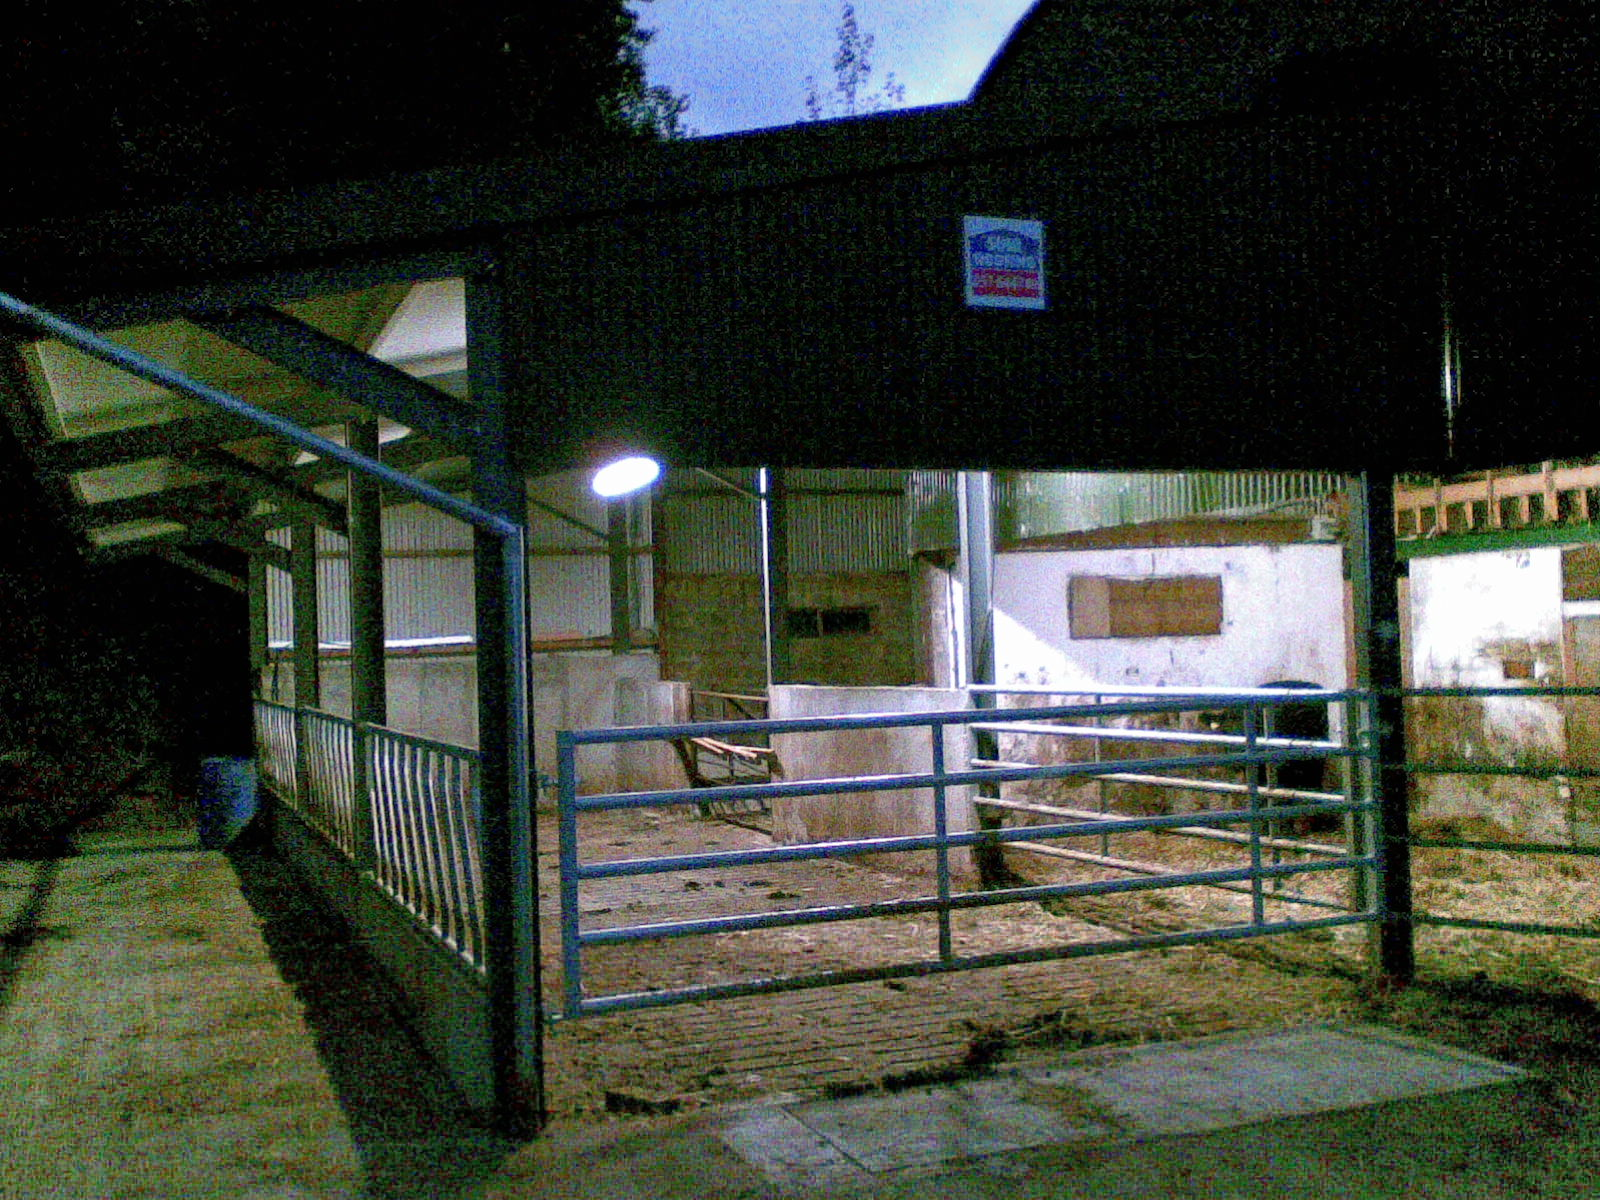 Grant Shed